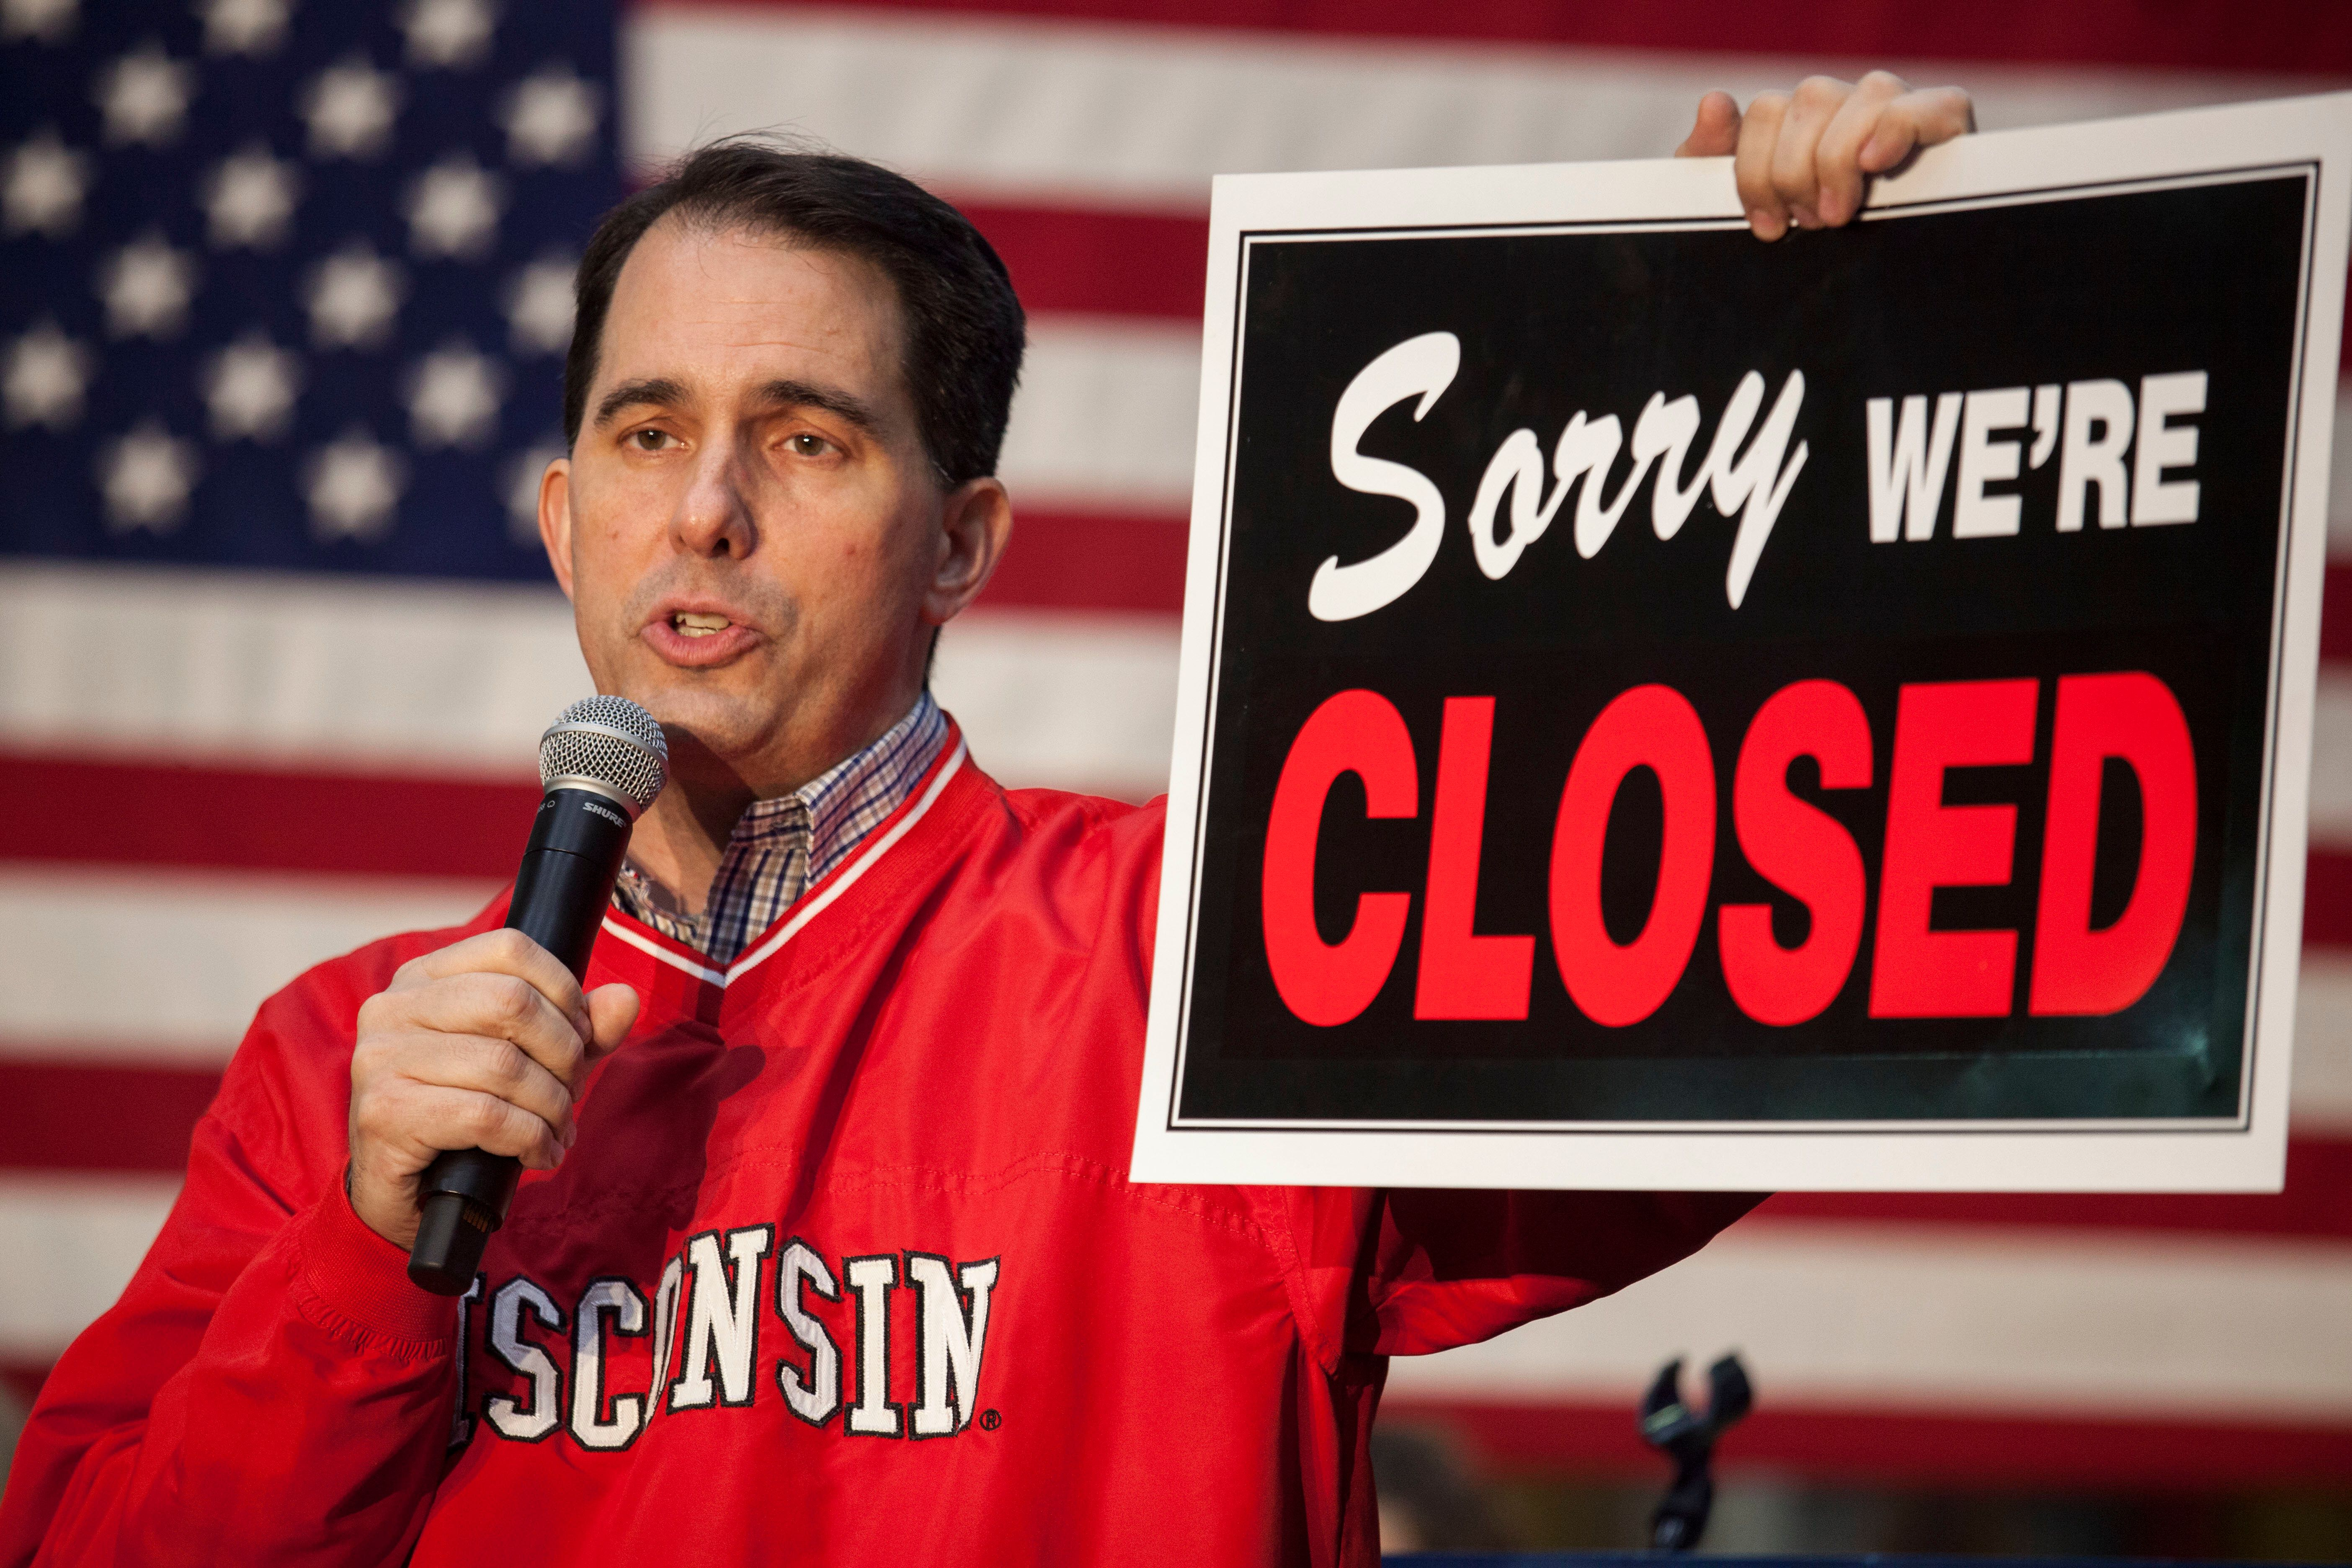 WAUKESHA, WI - NOVEMBER 05: Governor Scott Walker (WI-R) holds a sign that reads 'sorry we're closed' as he speaks to supporters at a last minute get out the vote rally the night before the midterm elections at the Weldall Mfg., Inc. on November 5, 2018 in Waukesha, Wisconsin. Incumbent Republican Governor Scott Walker is being challenged for the seat by Democrat Tony Evers in Tuesday's midterm elections. (Photo by Darren Hauck/Getty Images)